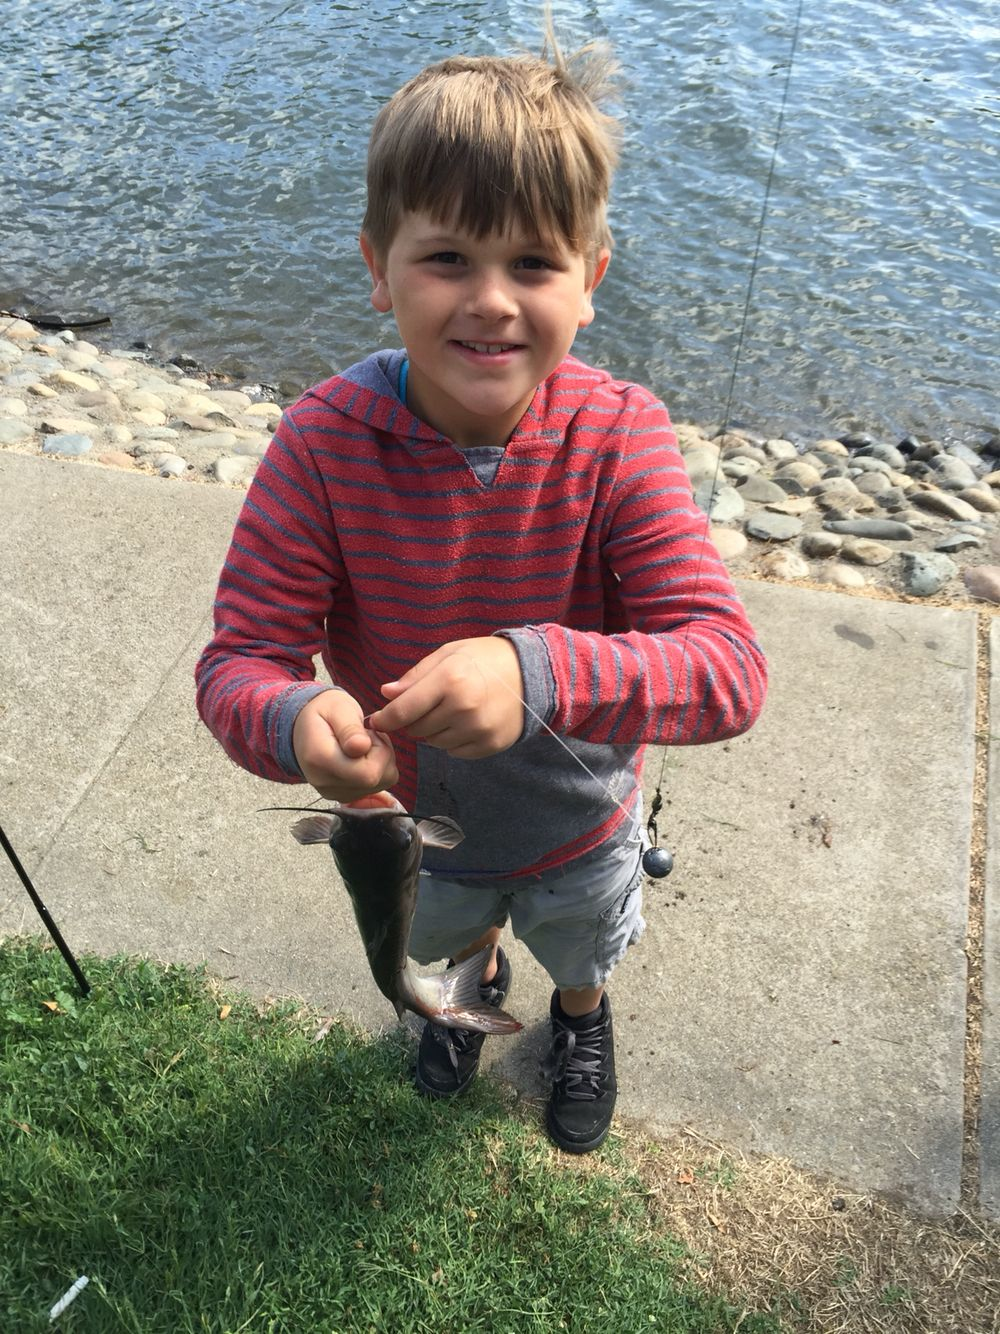 Jakes catch at the Ellis lake youth fishing derby. Look at that cute little face :)